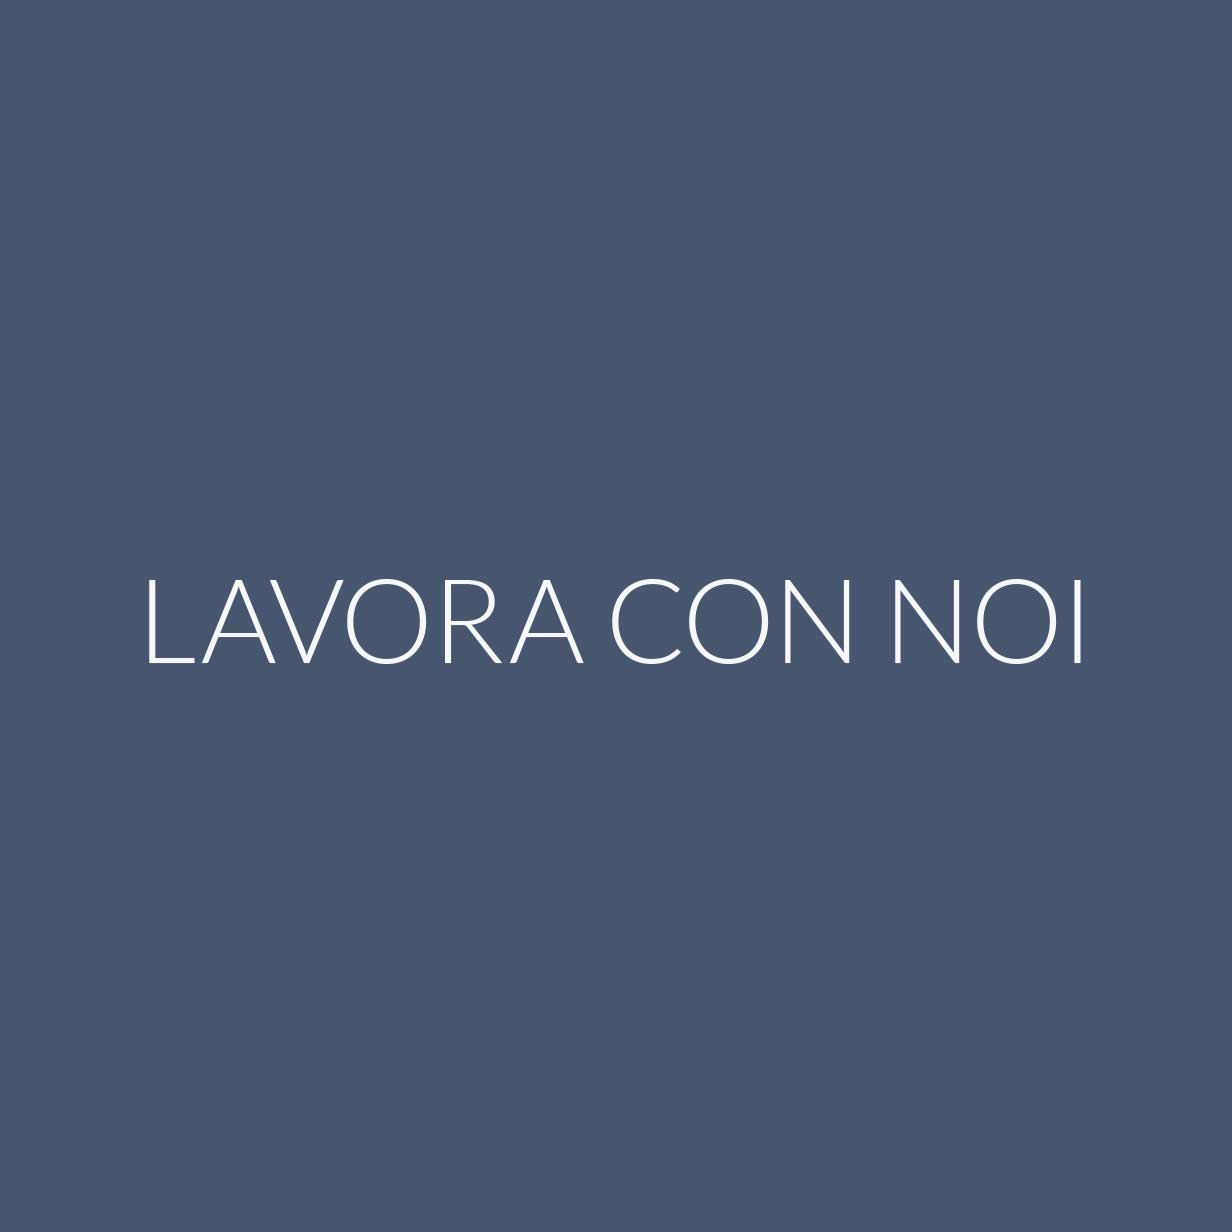 Lavora con noi - Twister communications group